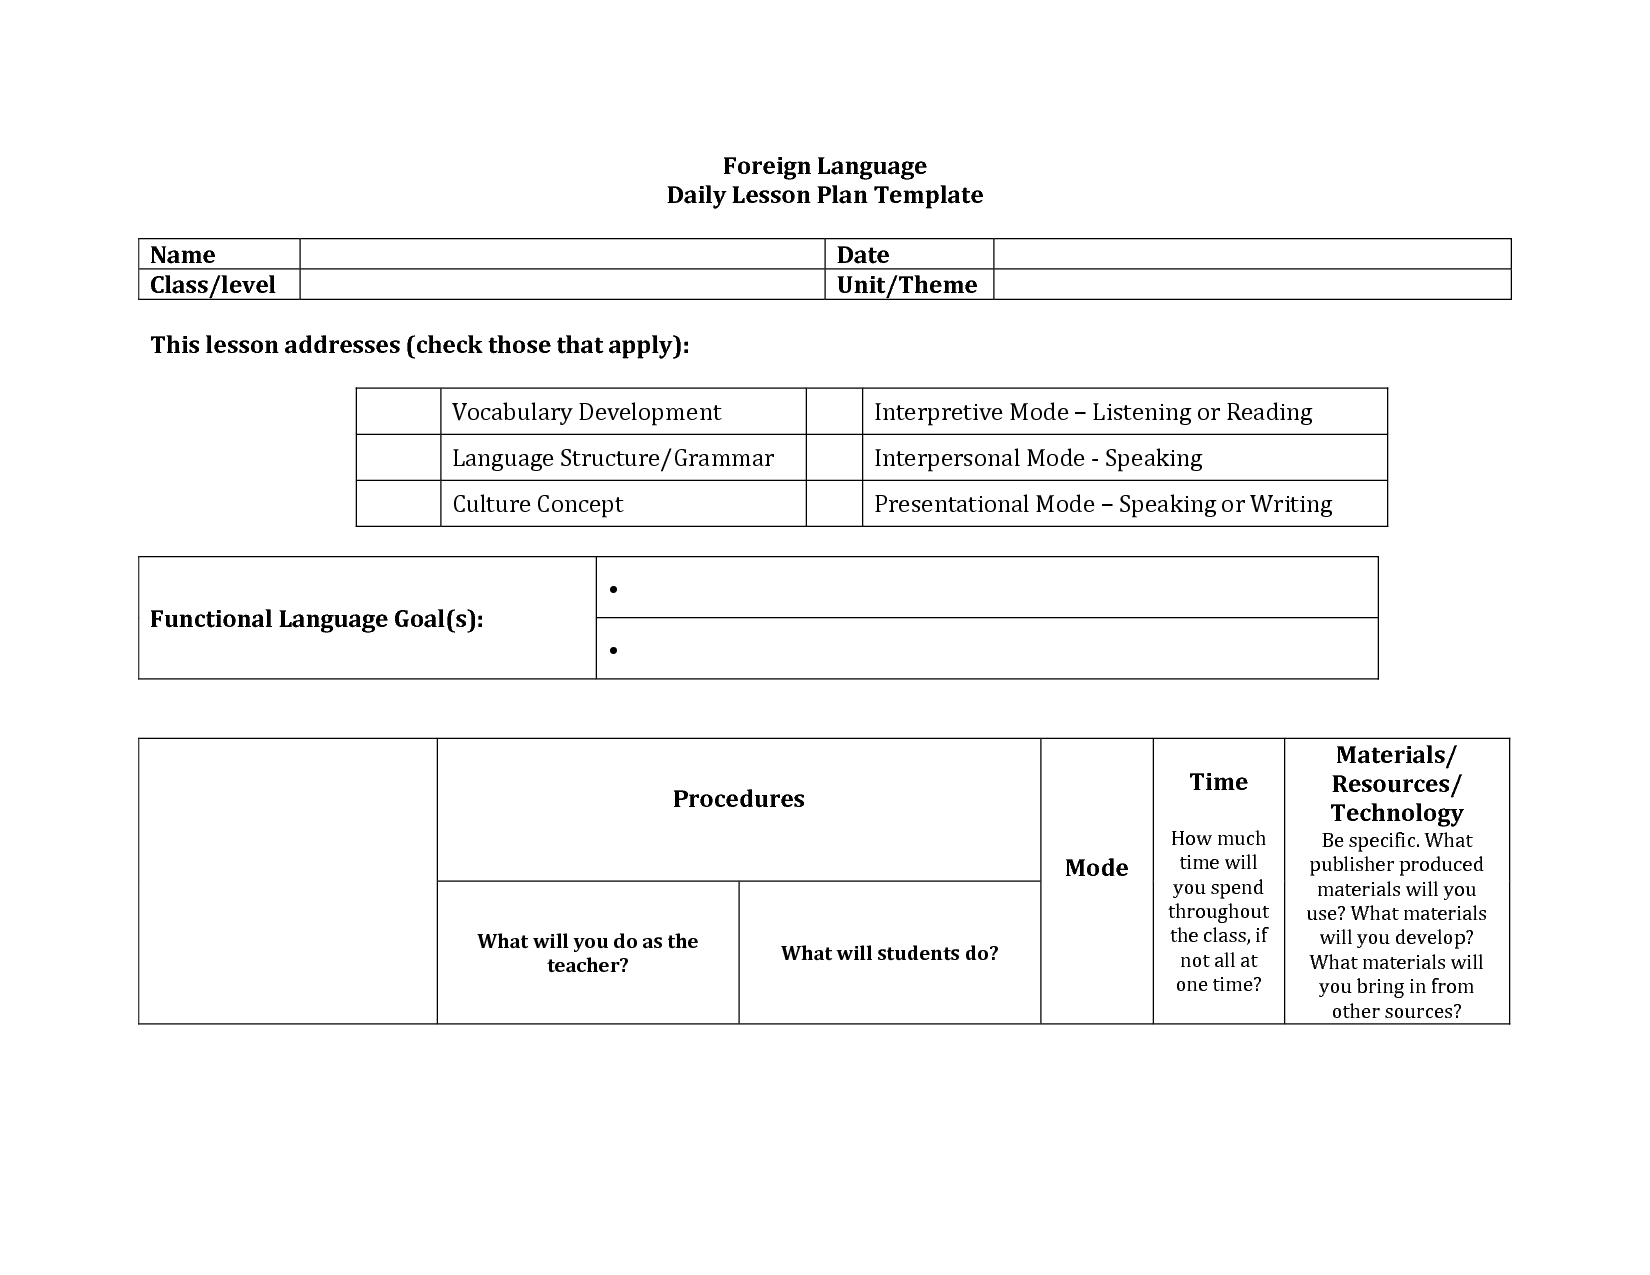 Foreign language lesson plan format google search for World language lesson plan template